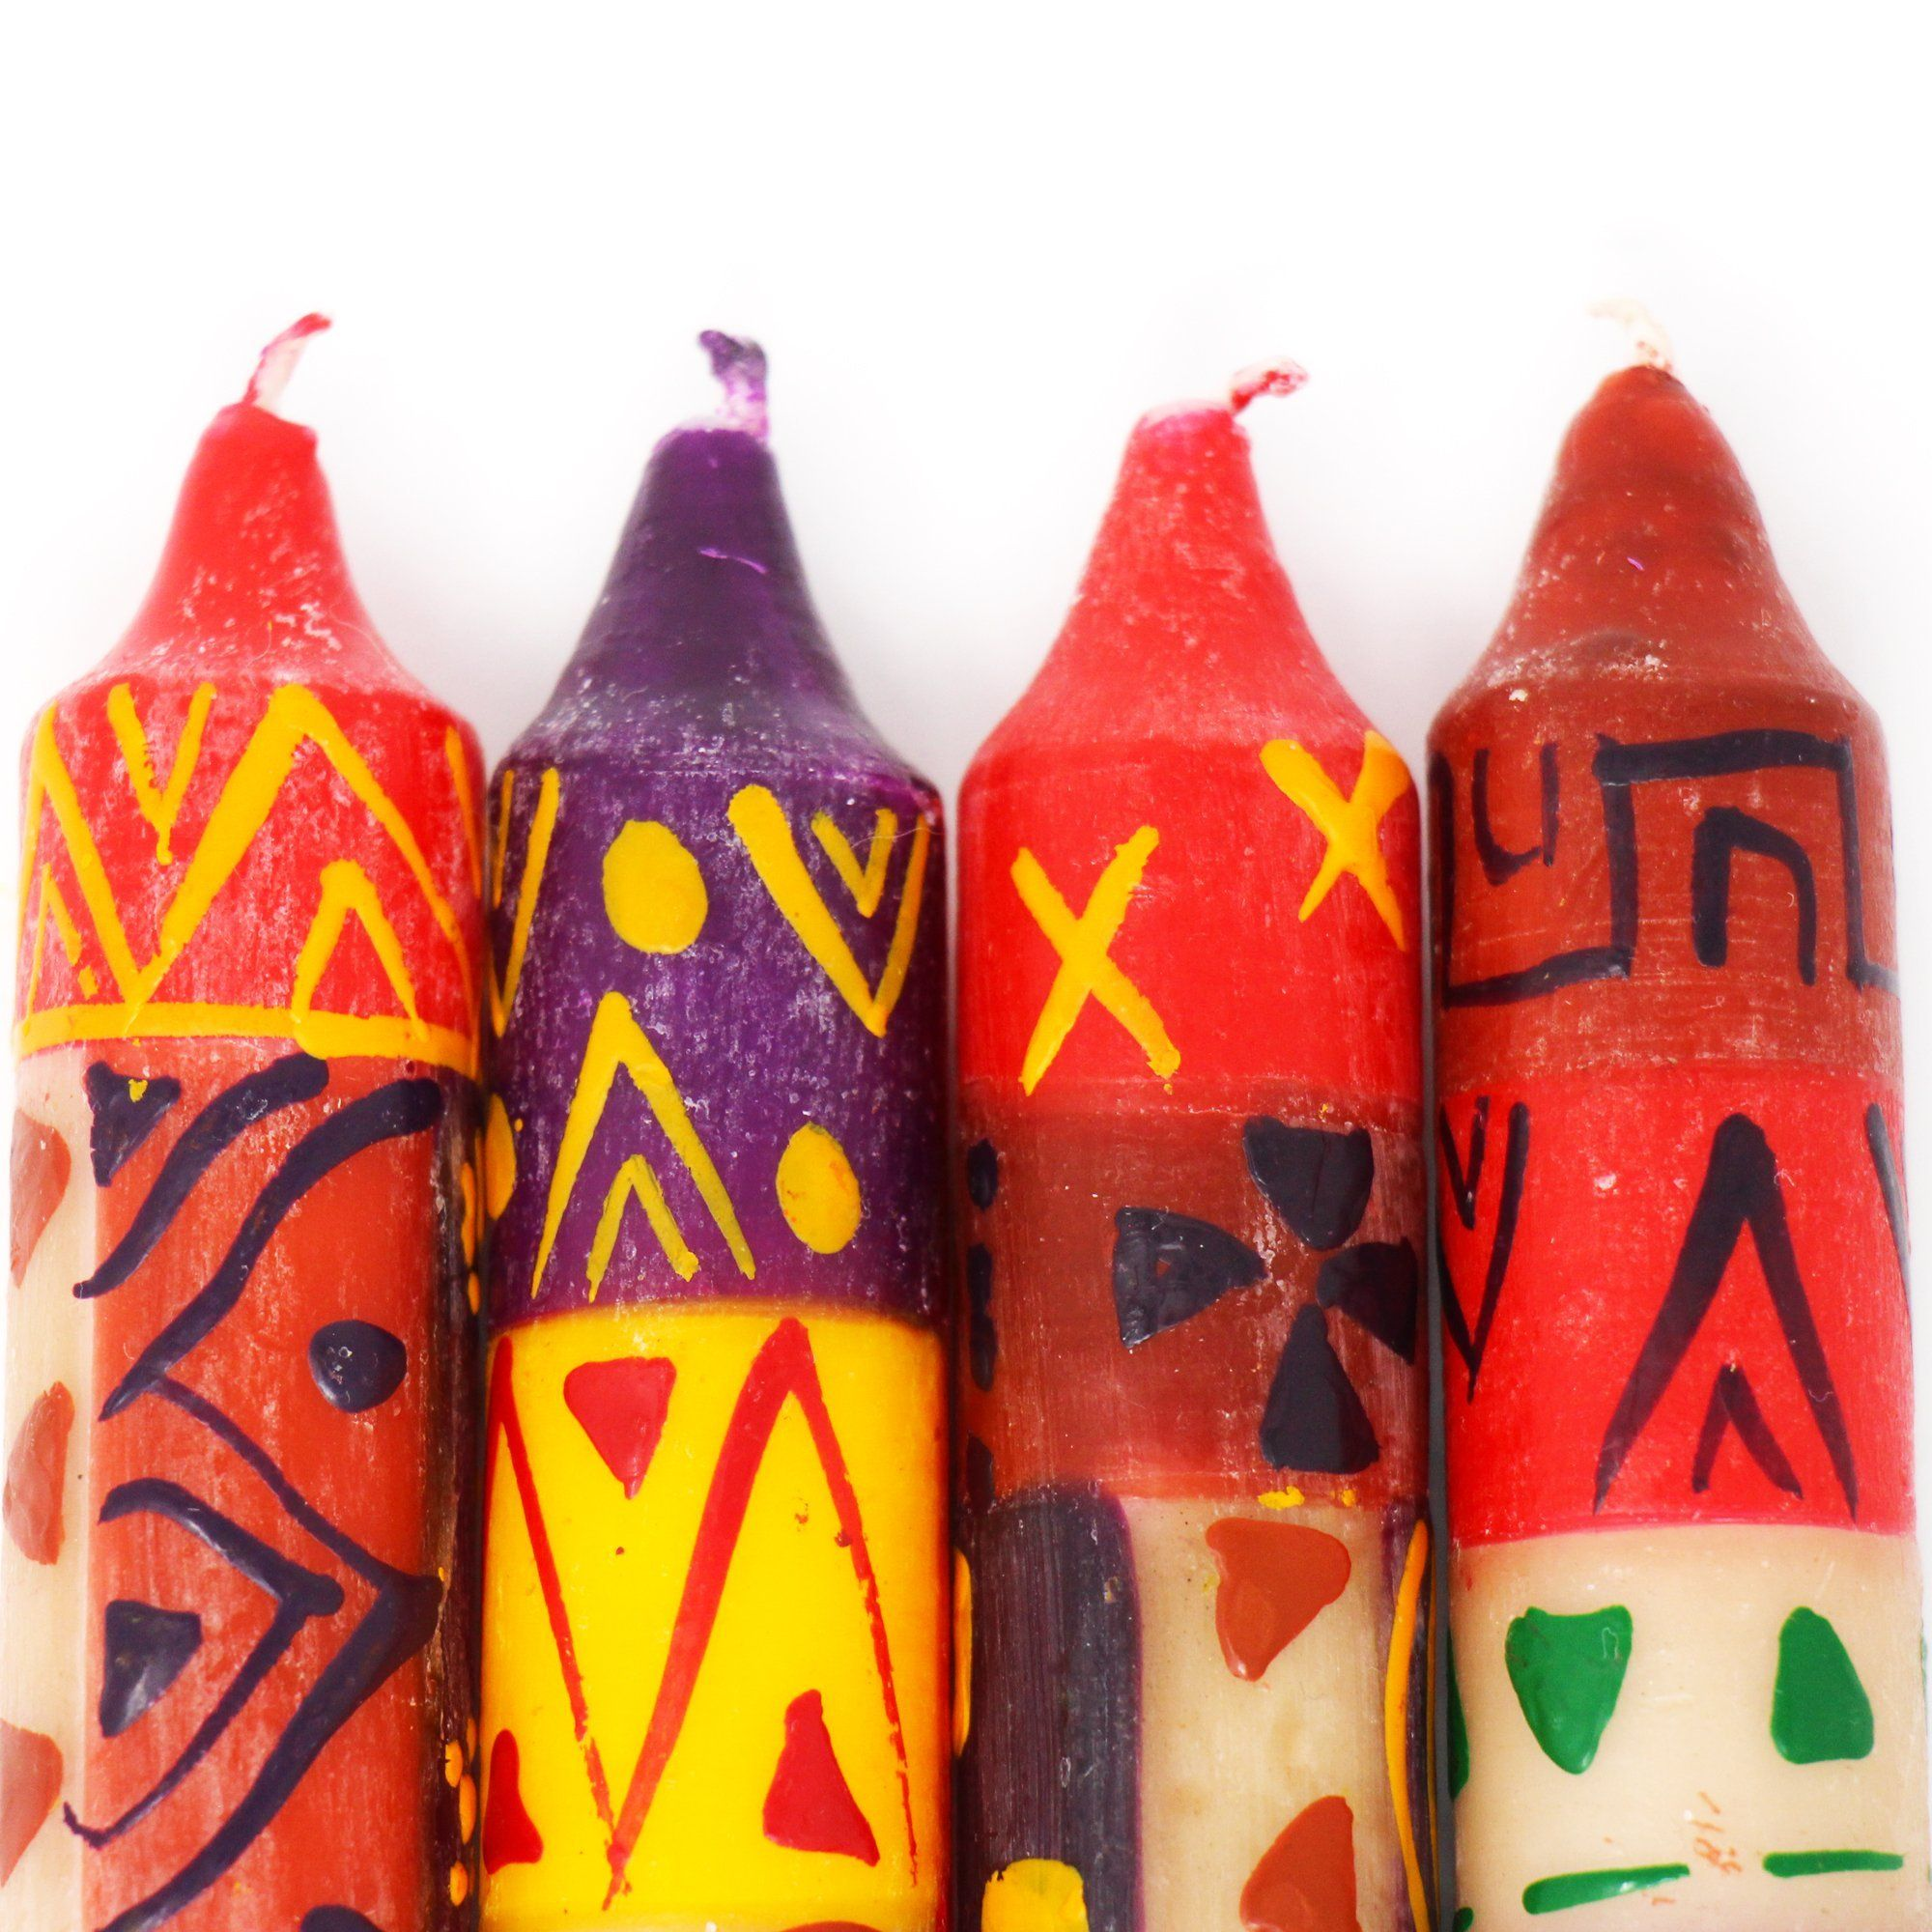 """These globally-inspired hand-painted candles are small works of art! In Zulu, """"Indabuko"""" means source or origin. To this origin, we return with this traditional design. Typical African colors, shapes, and patterns are impressively presented. Crafted by artisans in South Africa, each candle is hand-poured and then individually hand-painted. Each design name is derived from a special African word that is brought to life through the color and patterns which reflect the culture and influences of Sou"""